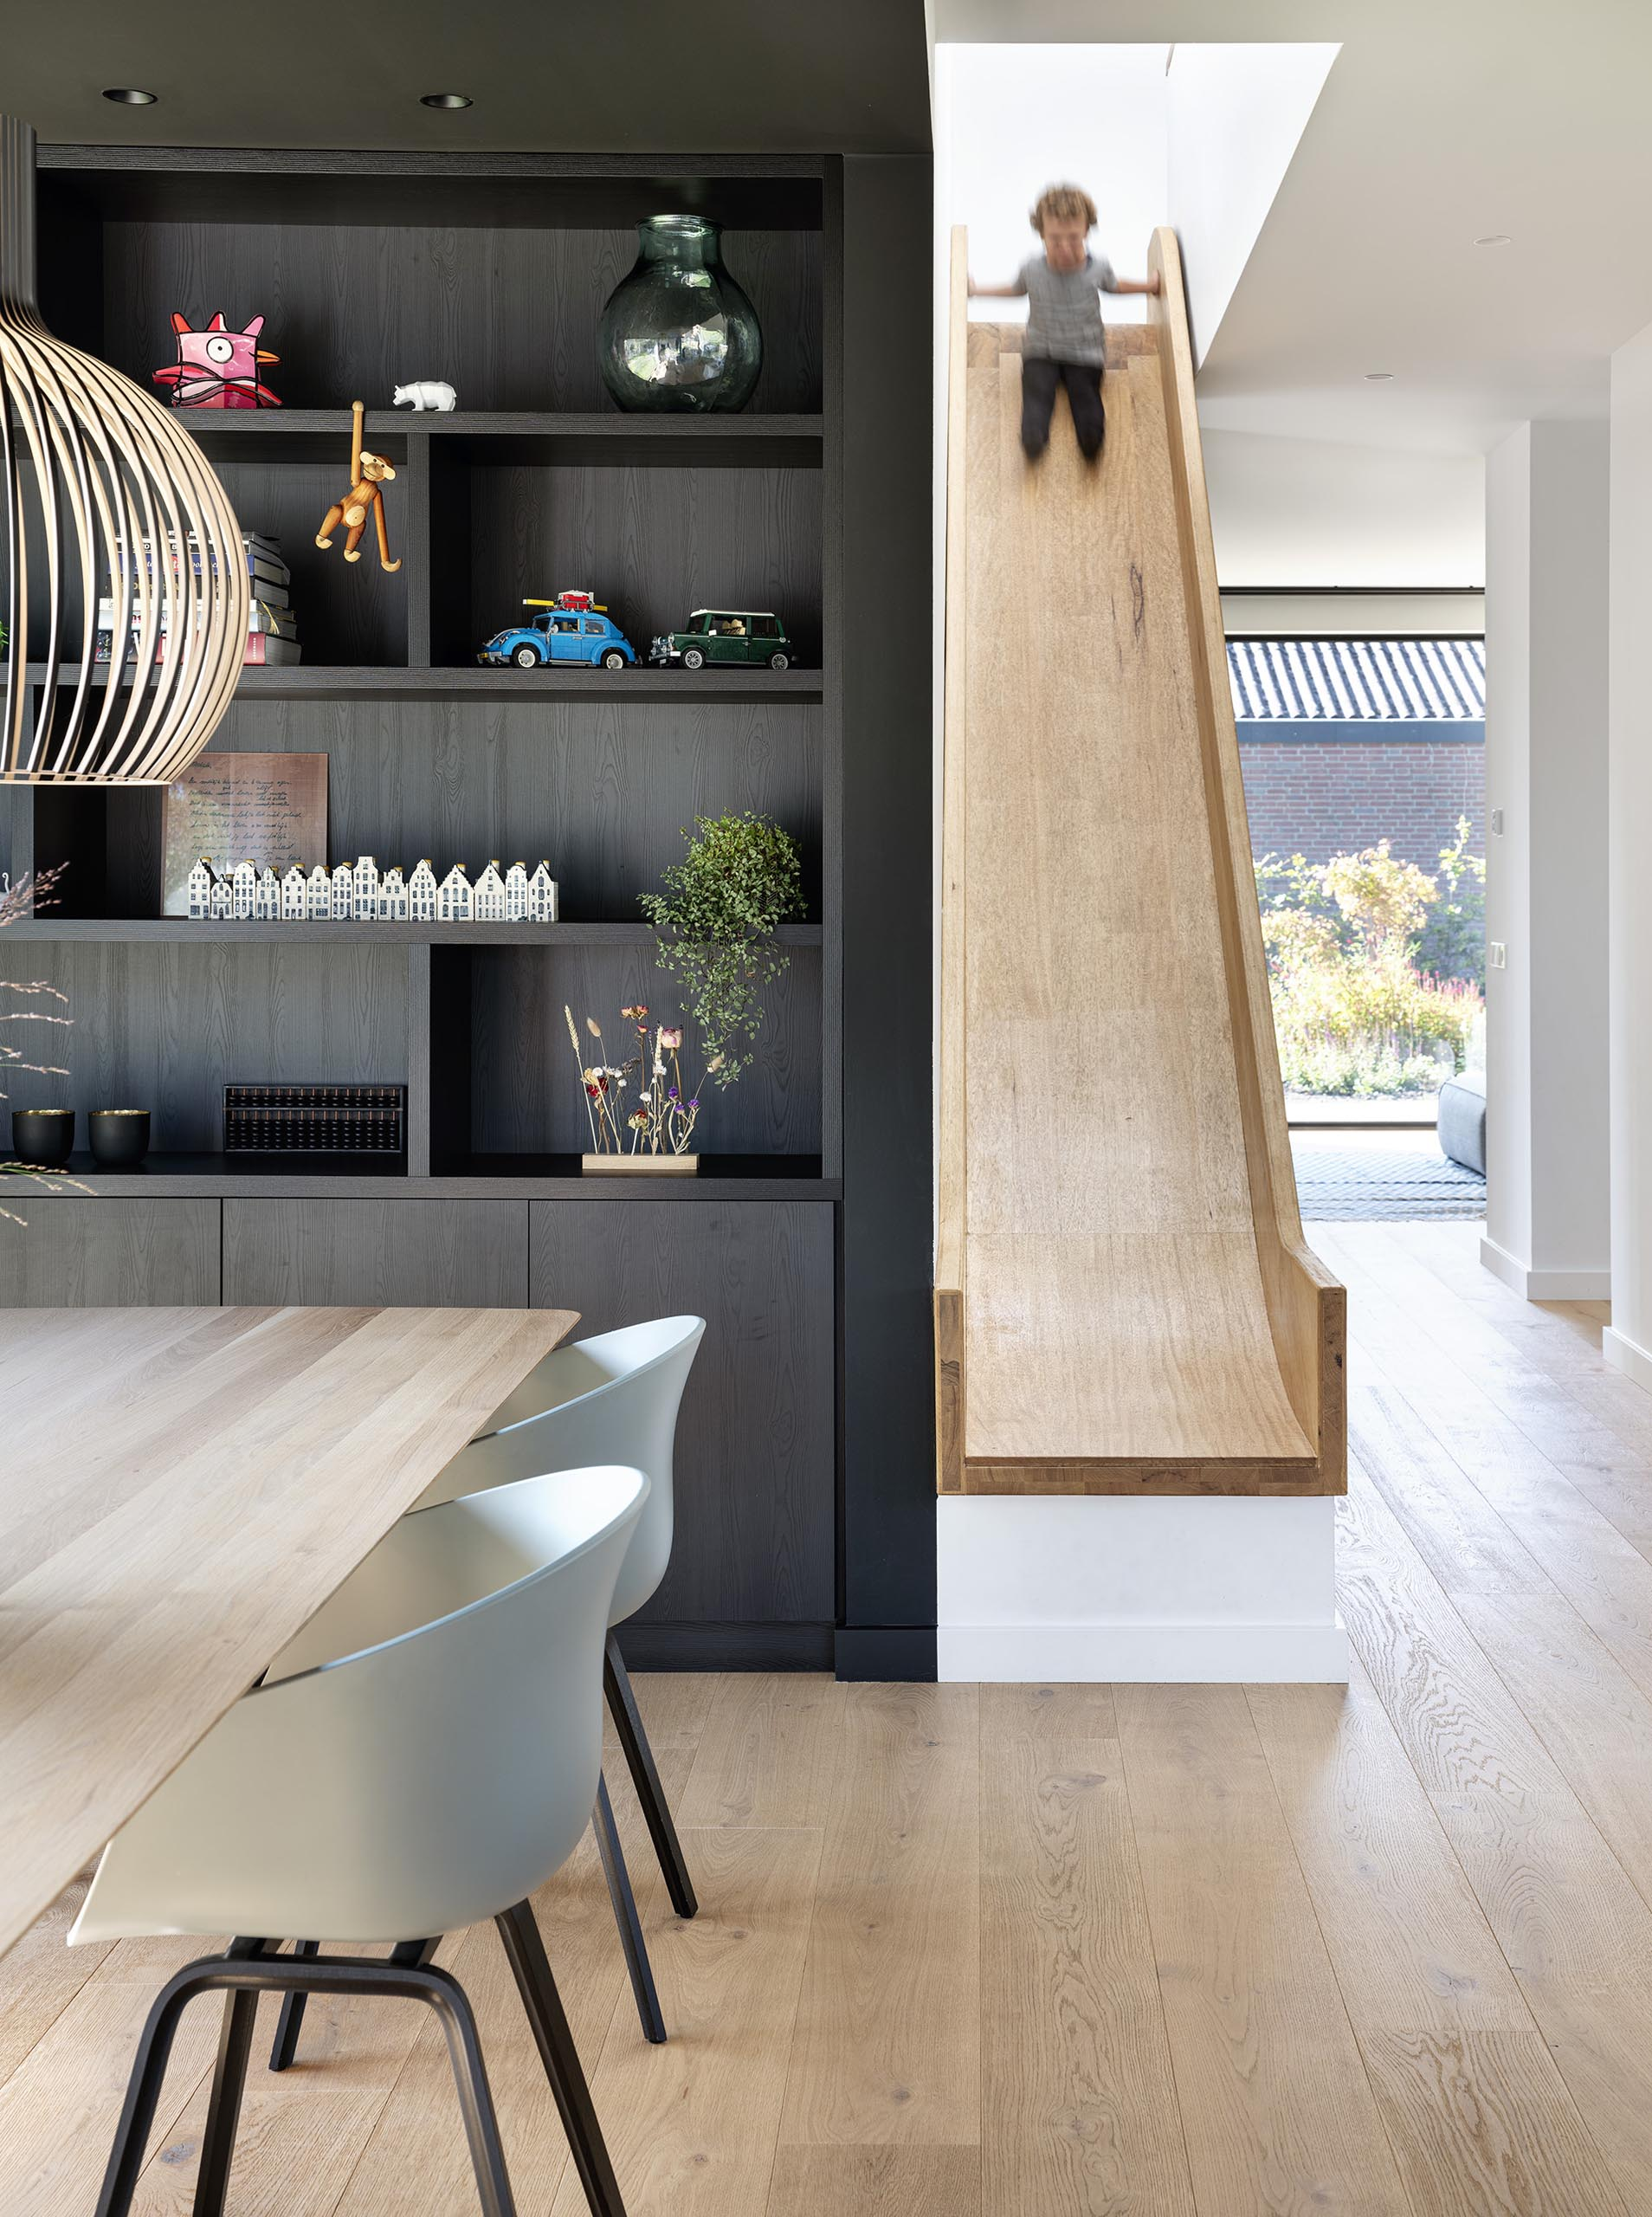 A fun element in the form of a wood slide is a quick way to reach the living spaces from the upper floor of the home.